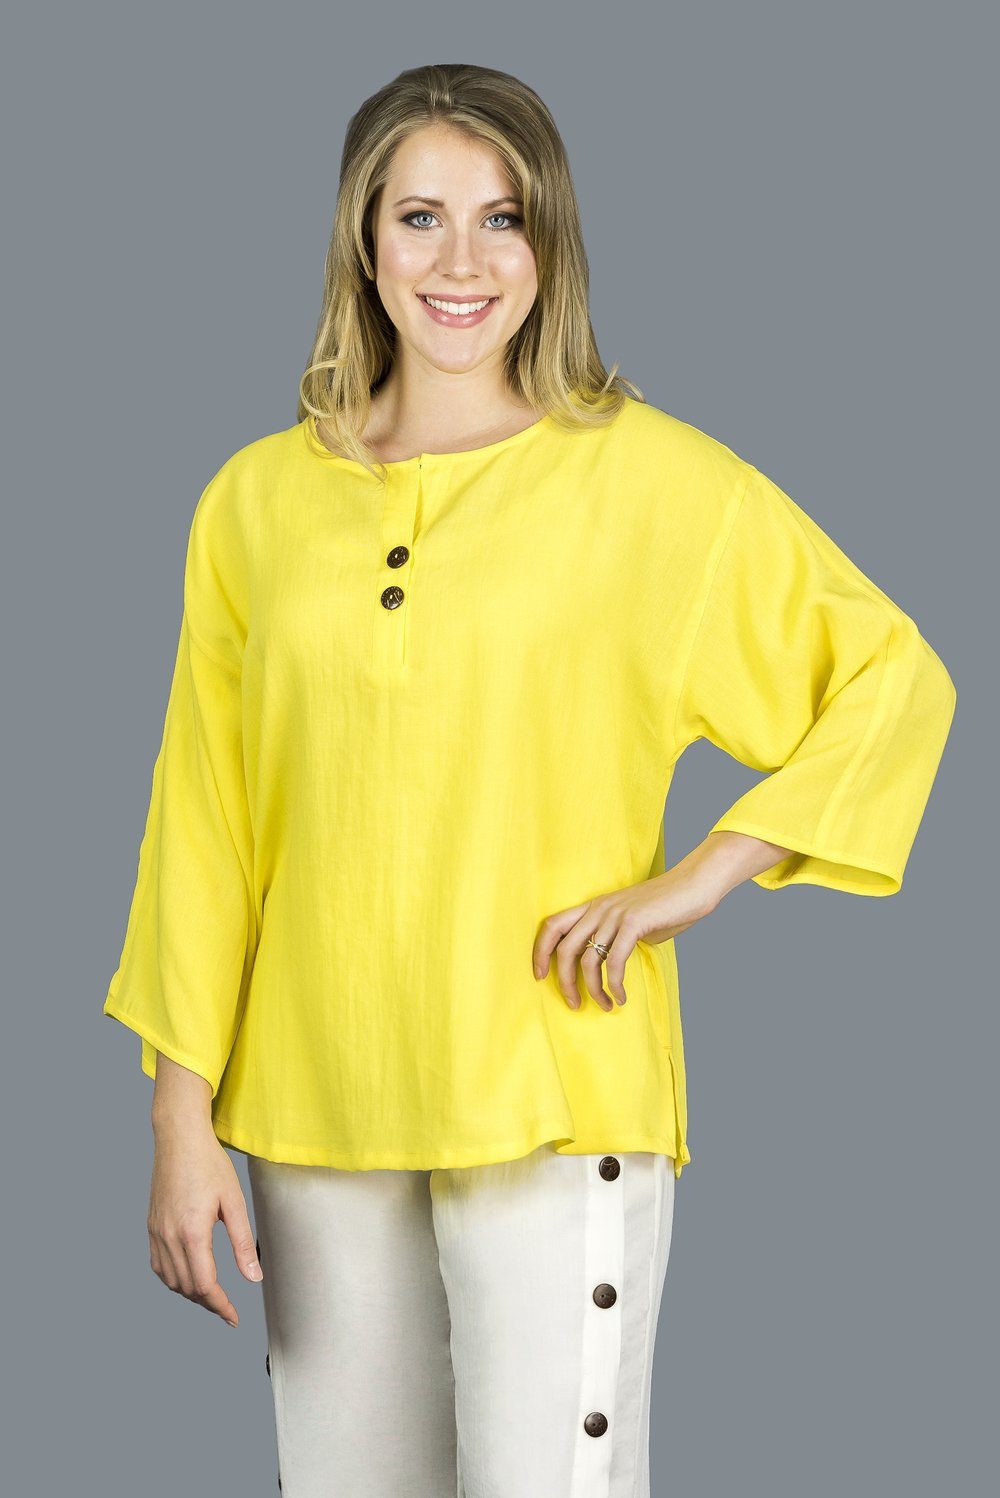 AA216 - Coconut Button Pullover    CL3981 - Daffodil